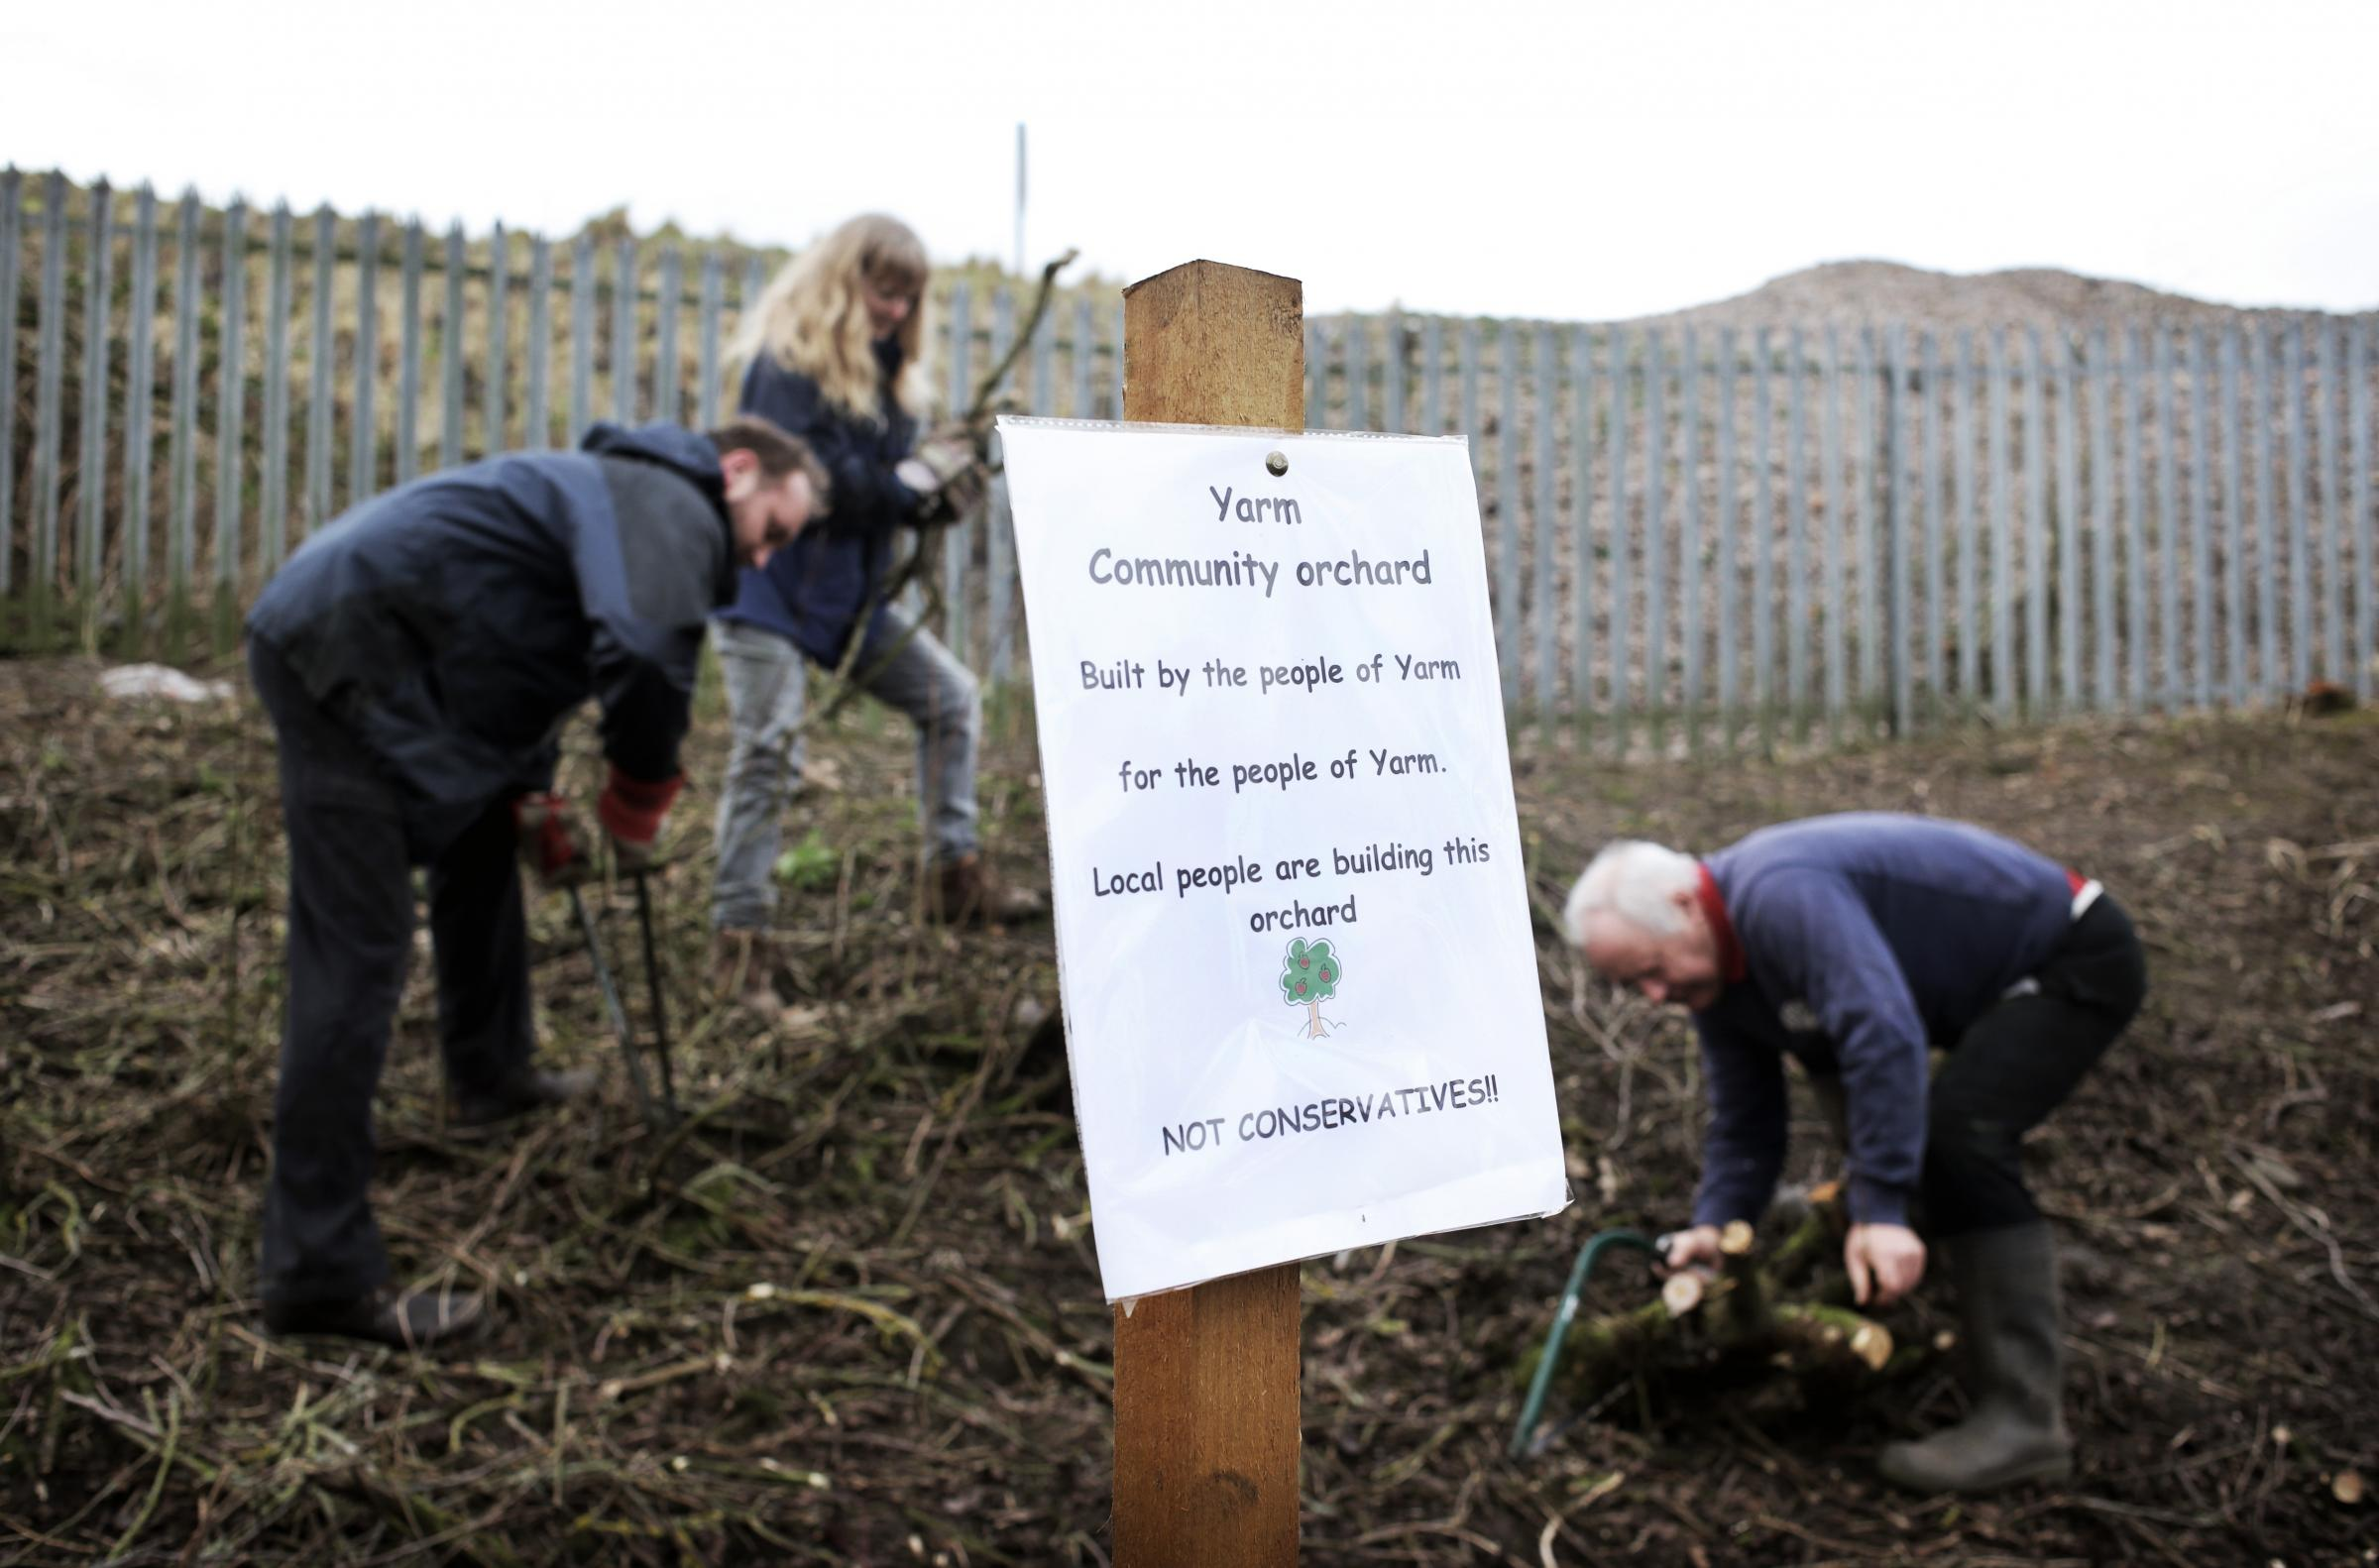 From left, Mark Chatburn, Carole Jones and Bob Wegg at work on Snaiths Field in Yarm. They say that local Conservatives are wrongly claiming the community orchard as their initiative.